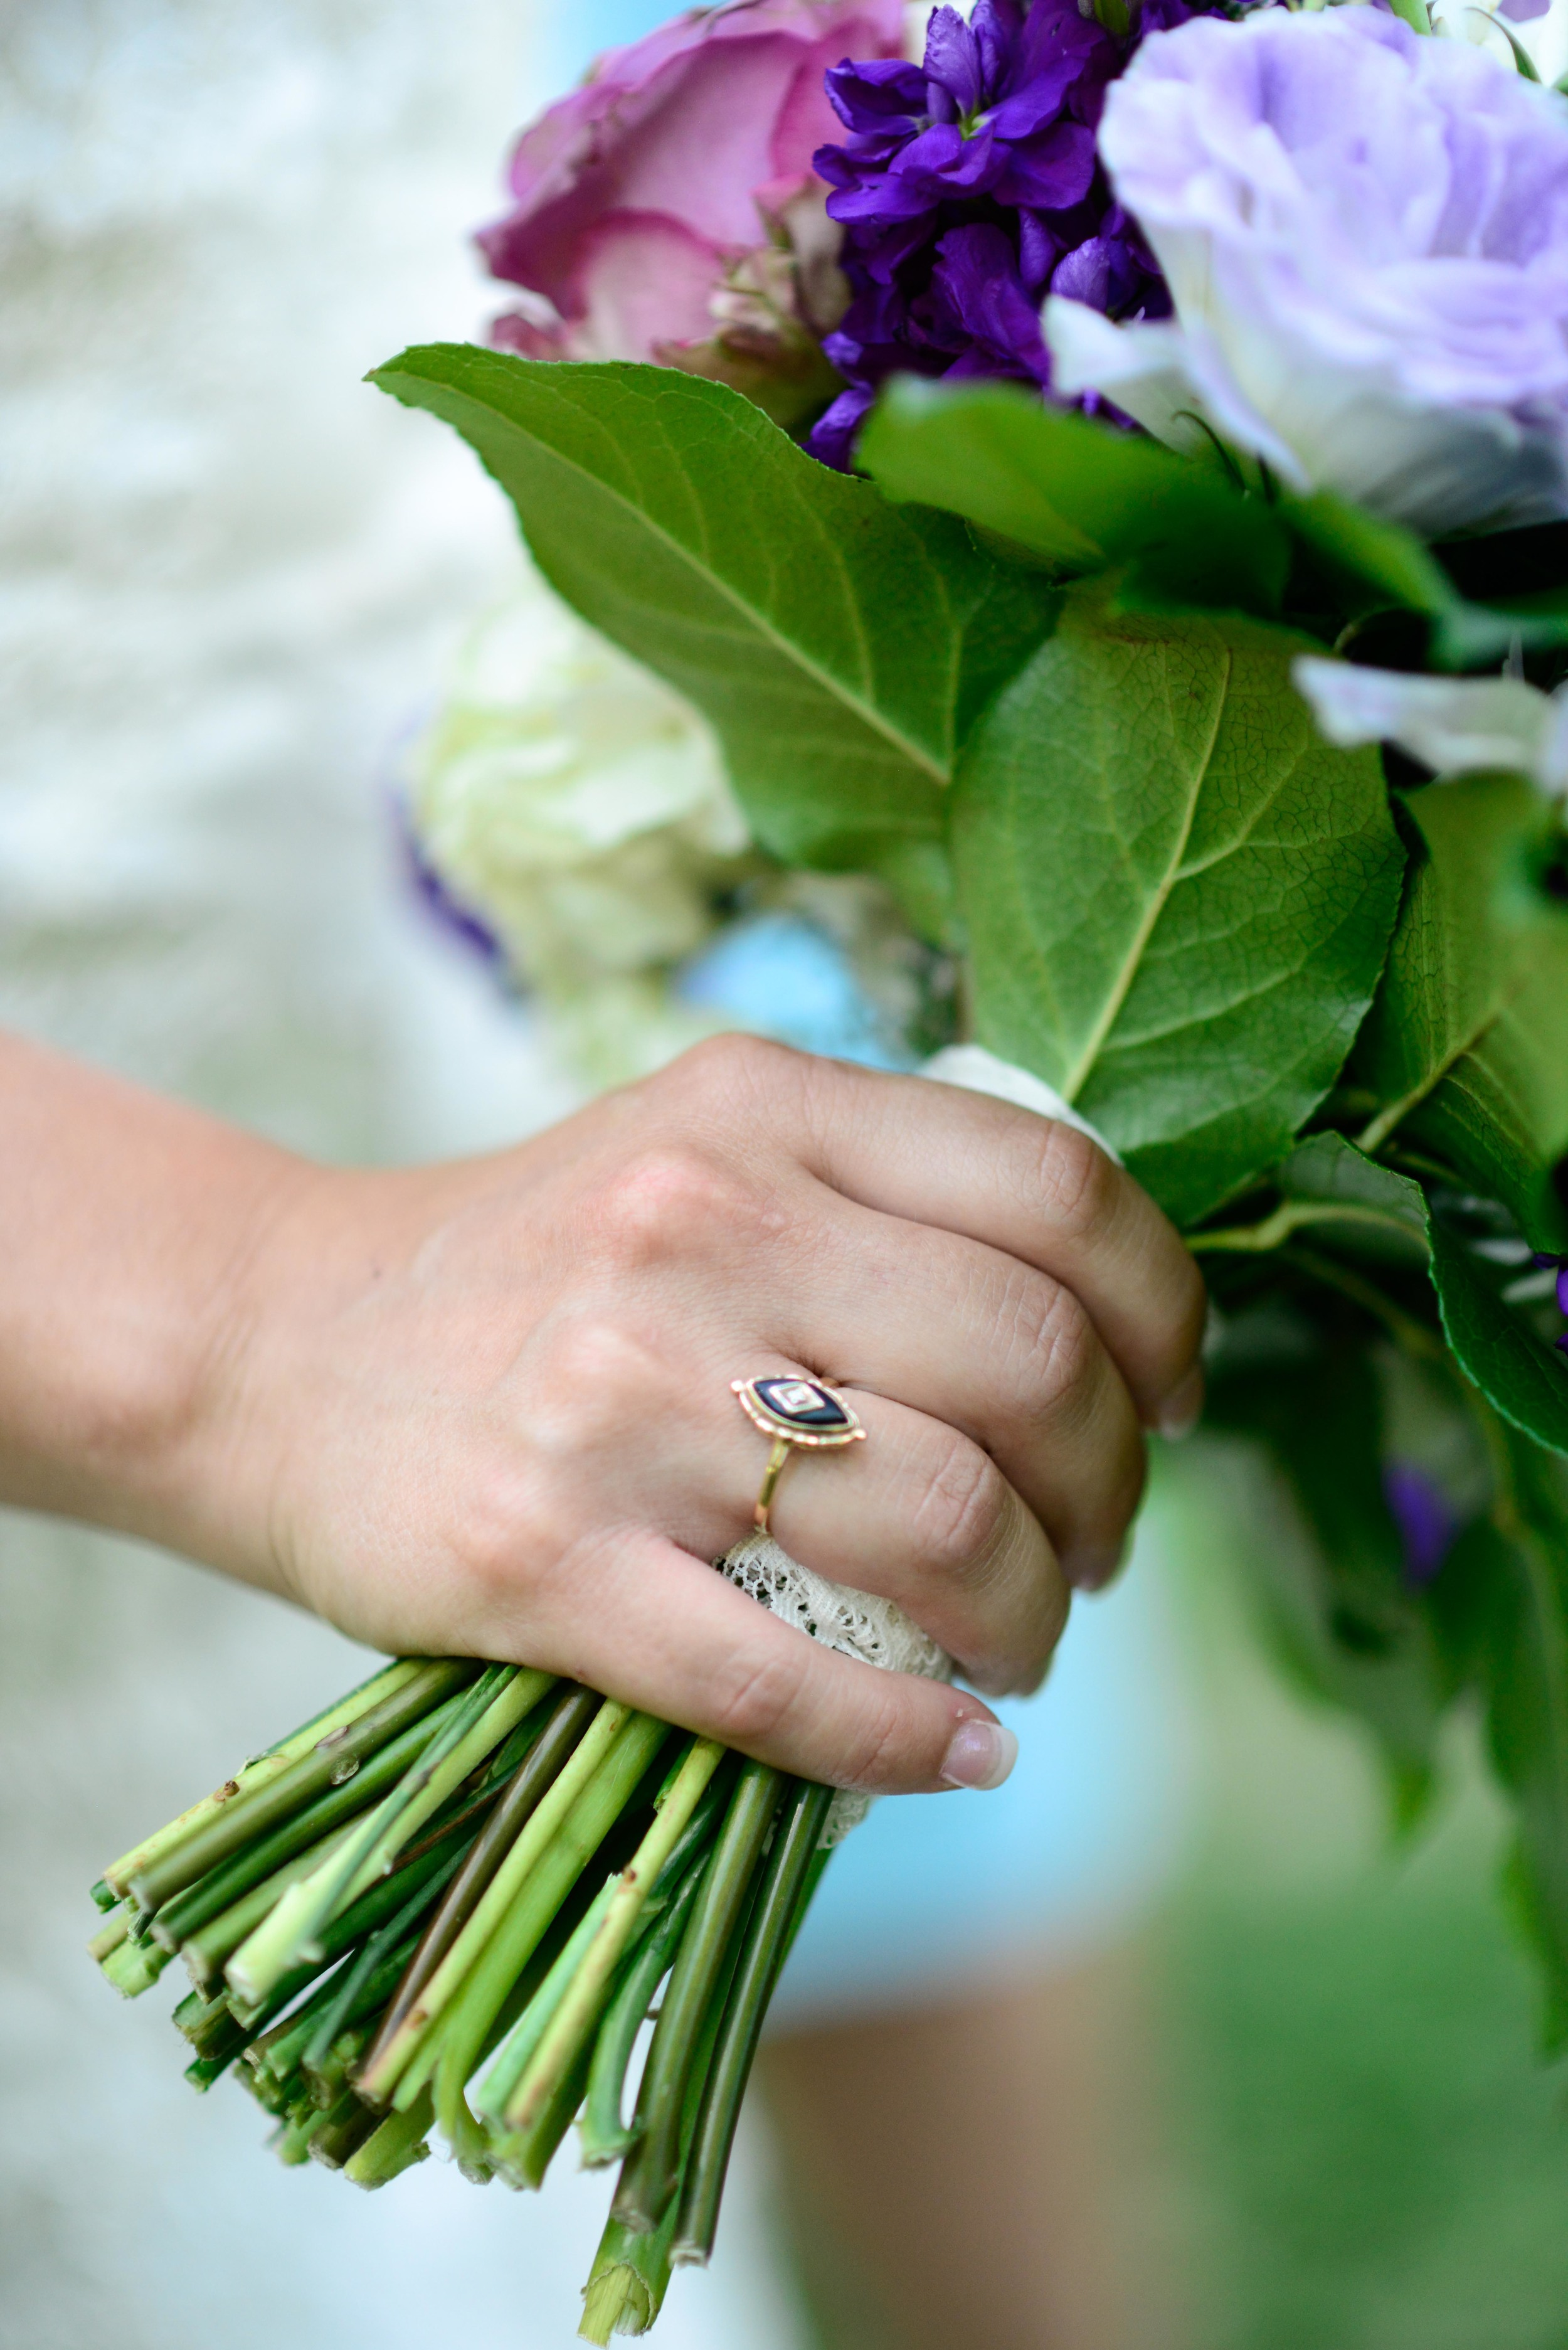 Anna had to have something special of her Grandmother's there for her big day.... so she chose this ring to have her there with her.